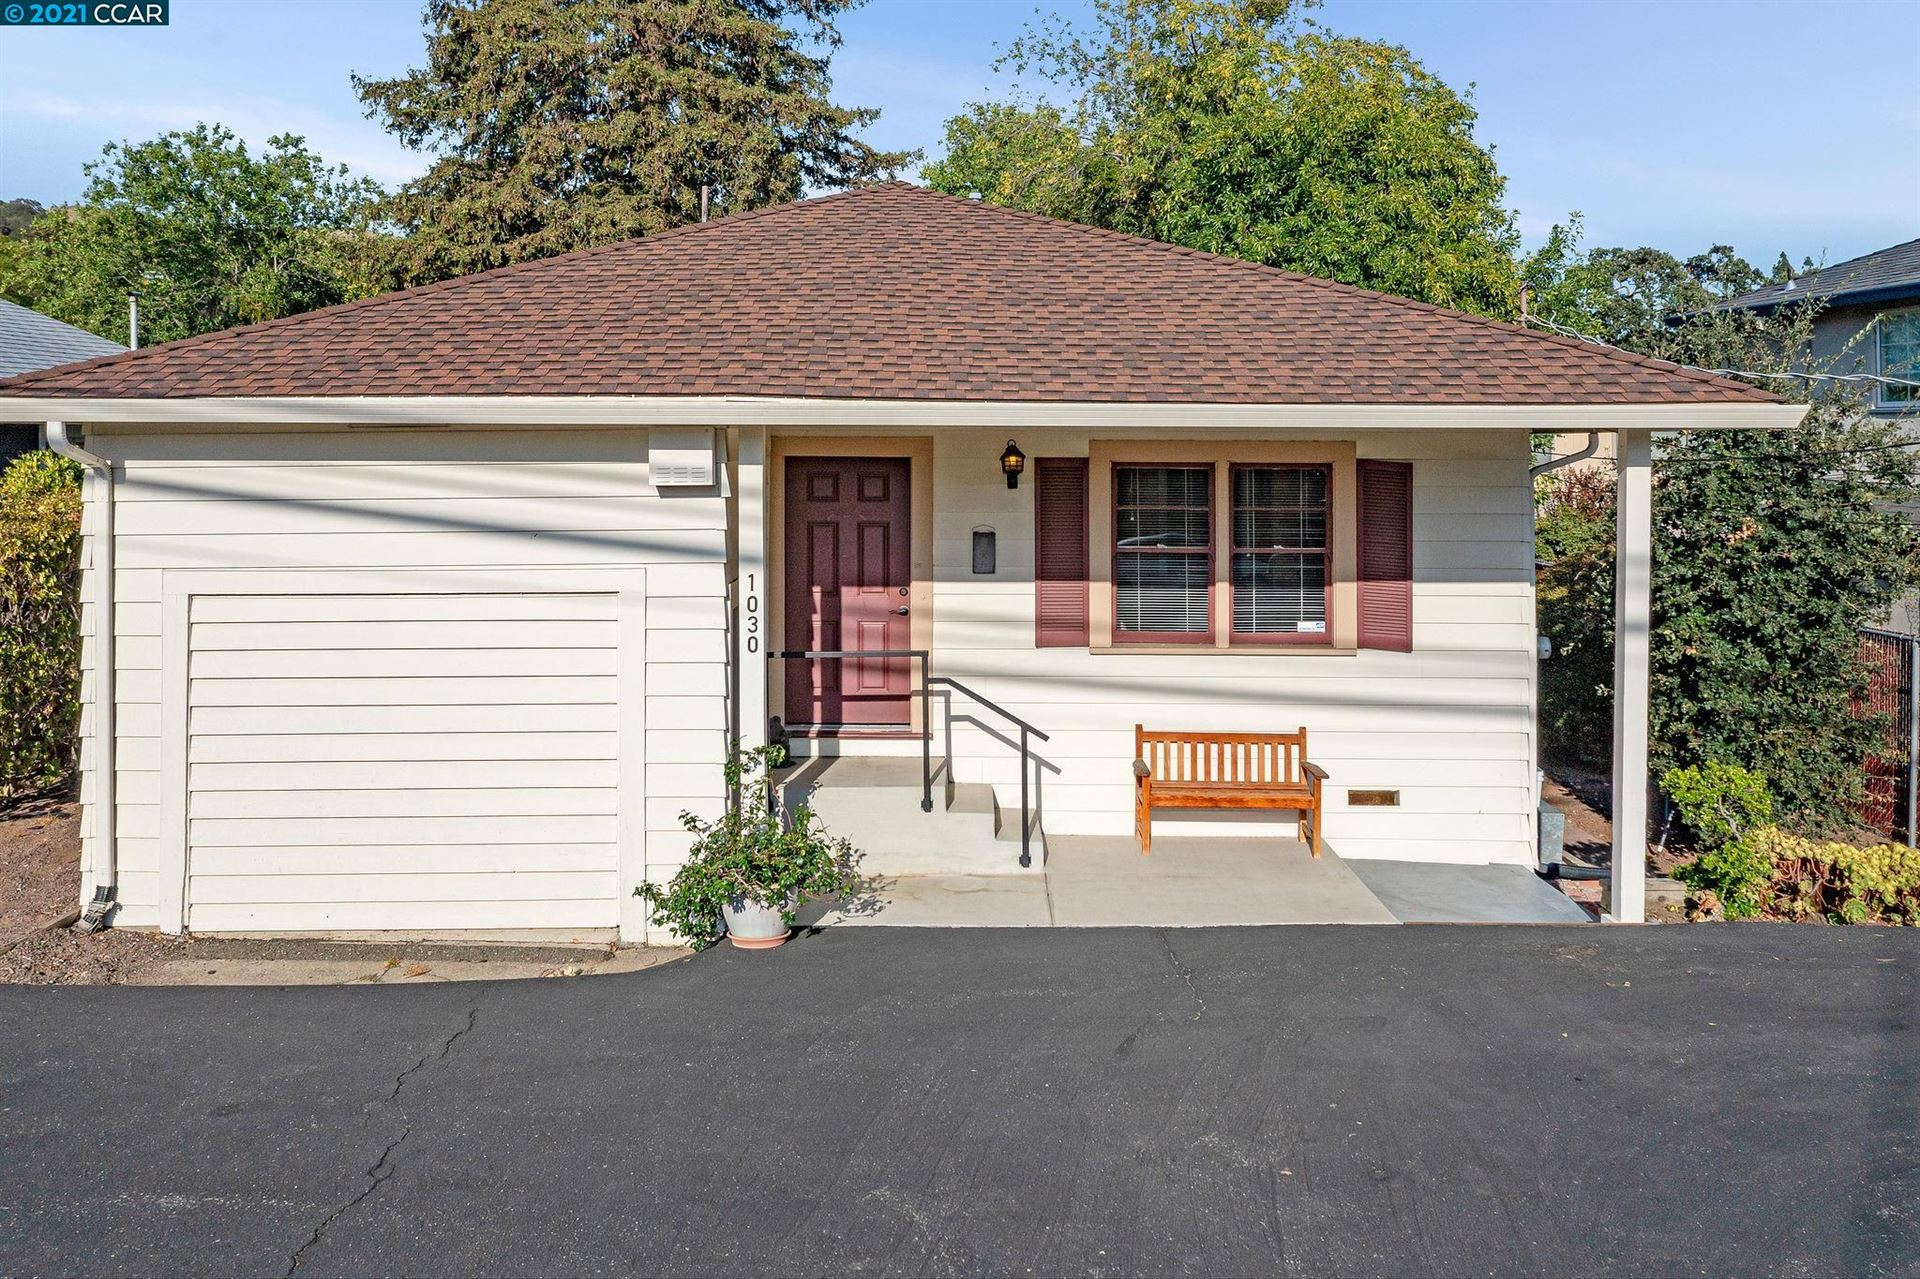 Photo of 1030 Brown Ave, Lafayette, CA 94549 (MLS # 40968895)